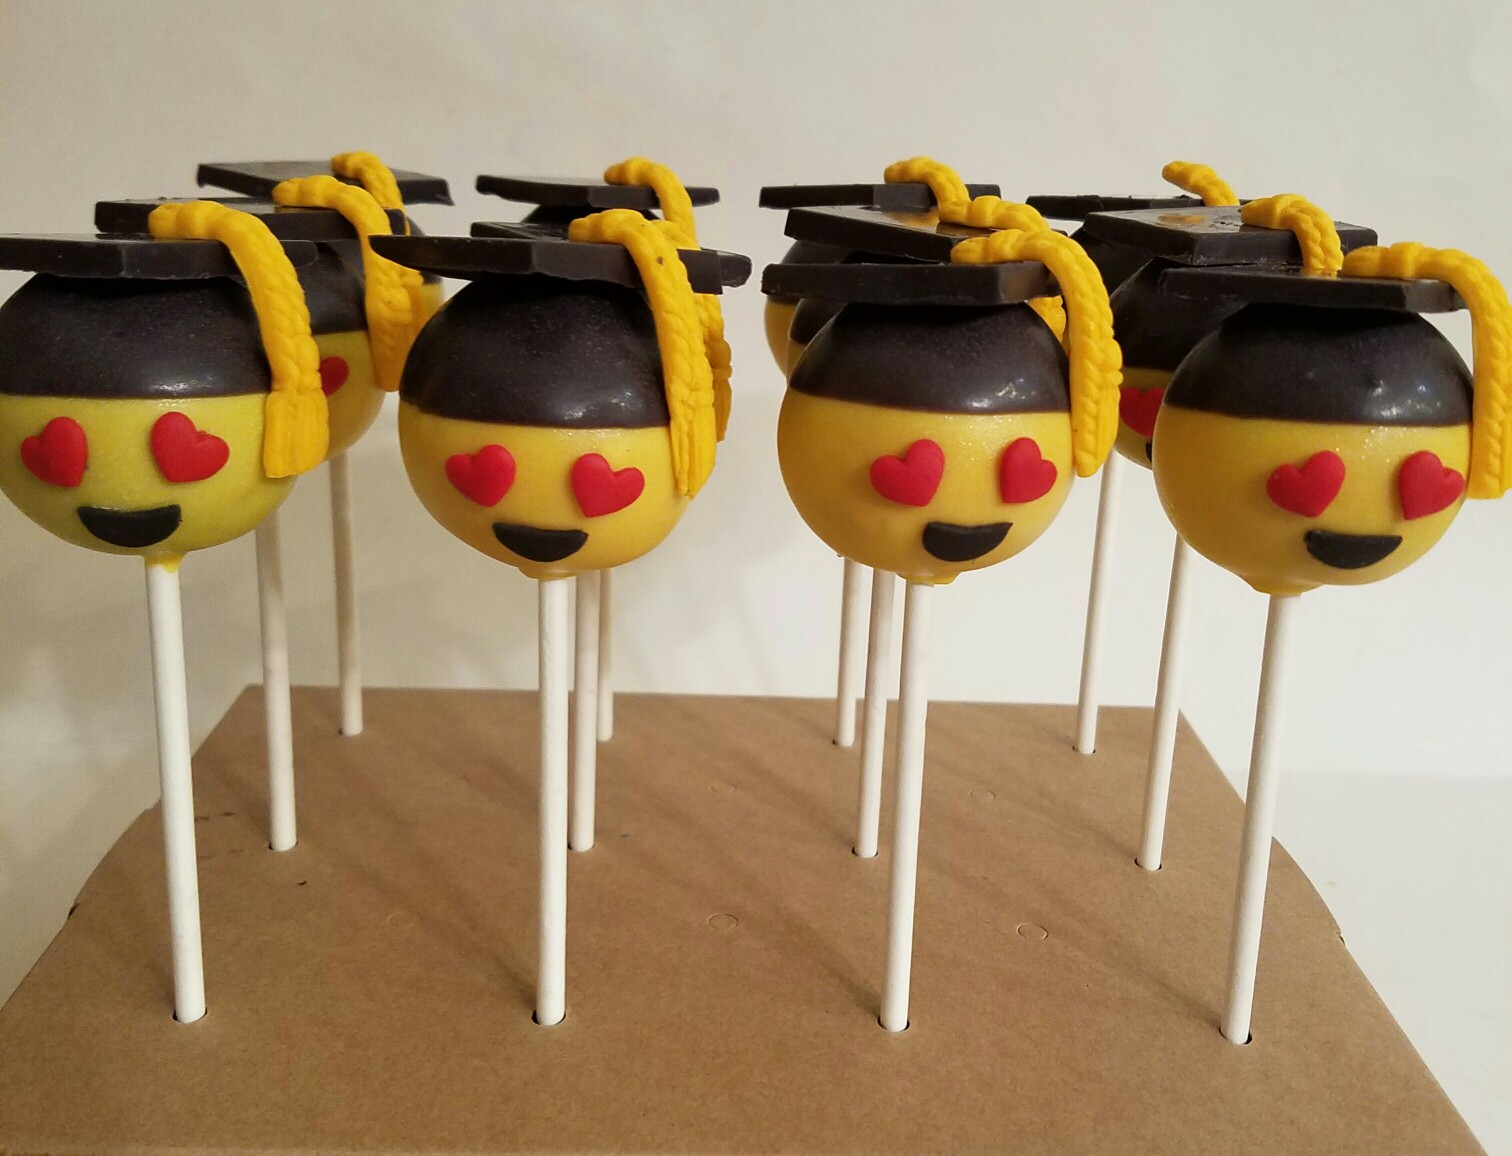 Graduation Cakes Need Some Delicious Inspiration